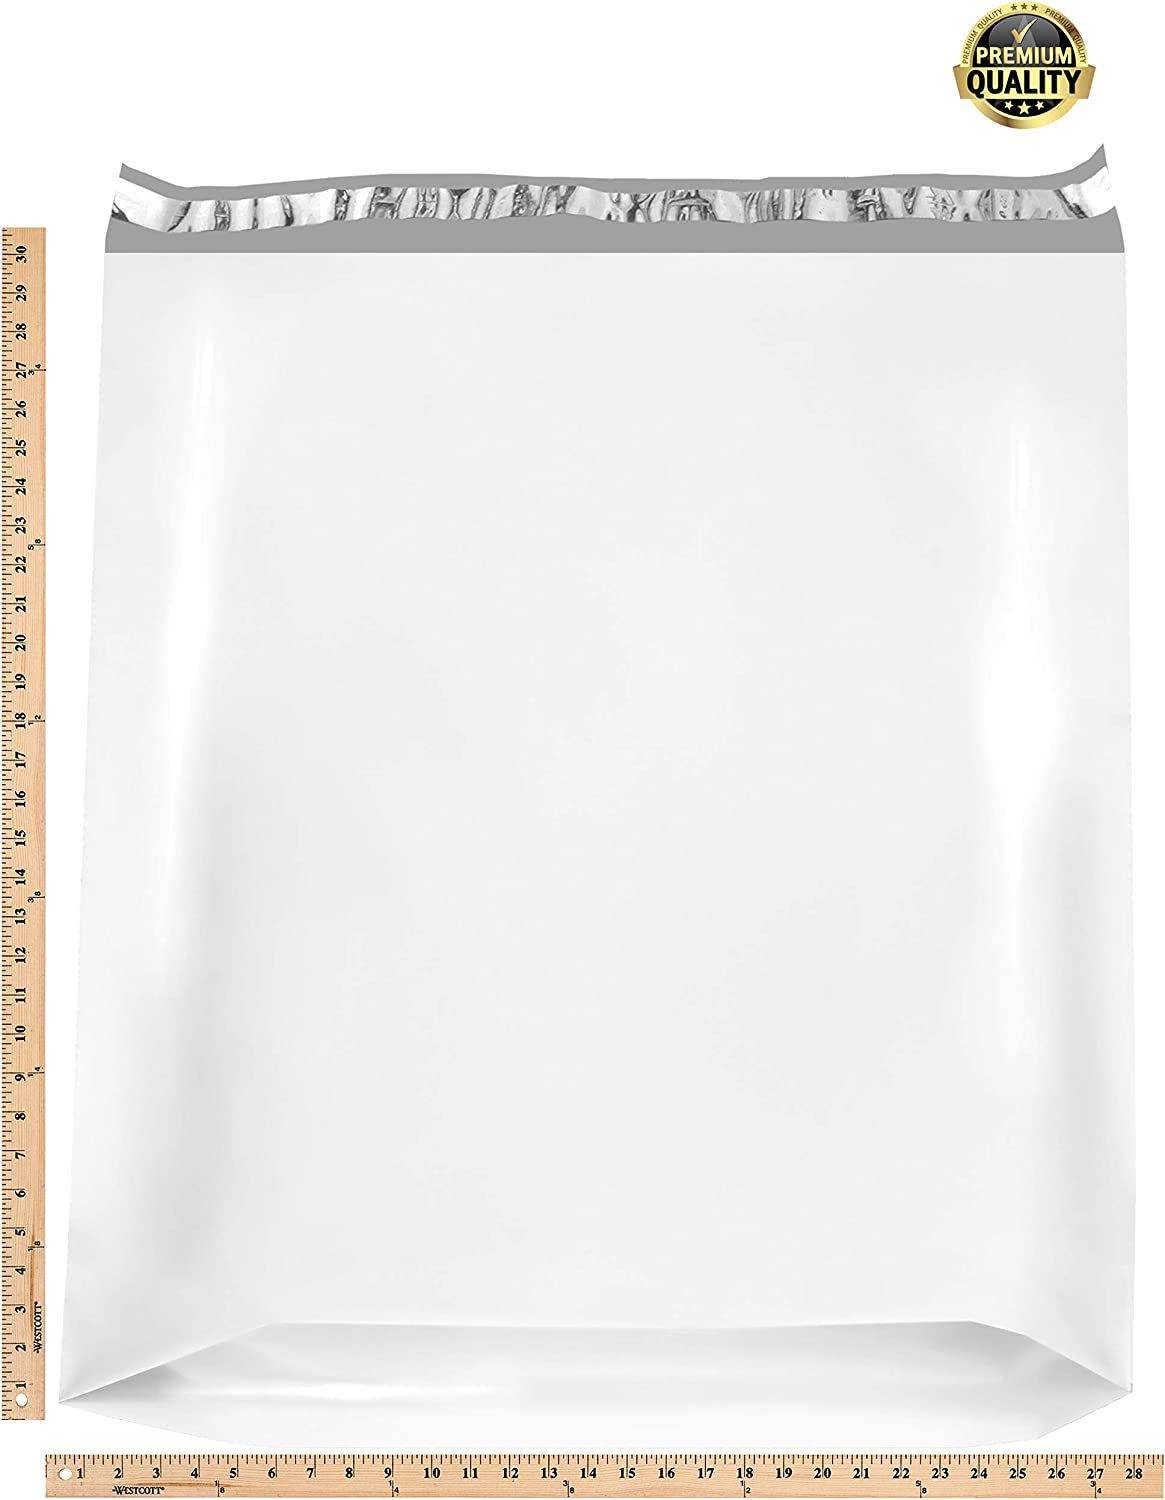 Amazon Com 10 Pack Large Poly Mailers 28 X 30 X 6 Gusseted Poly Mailer Xx Large Poly Shipping Bags For Clothes White Shipping Envelopes White Plastic Mailing Bags Peal And Seal Packaging